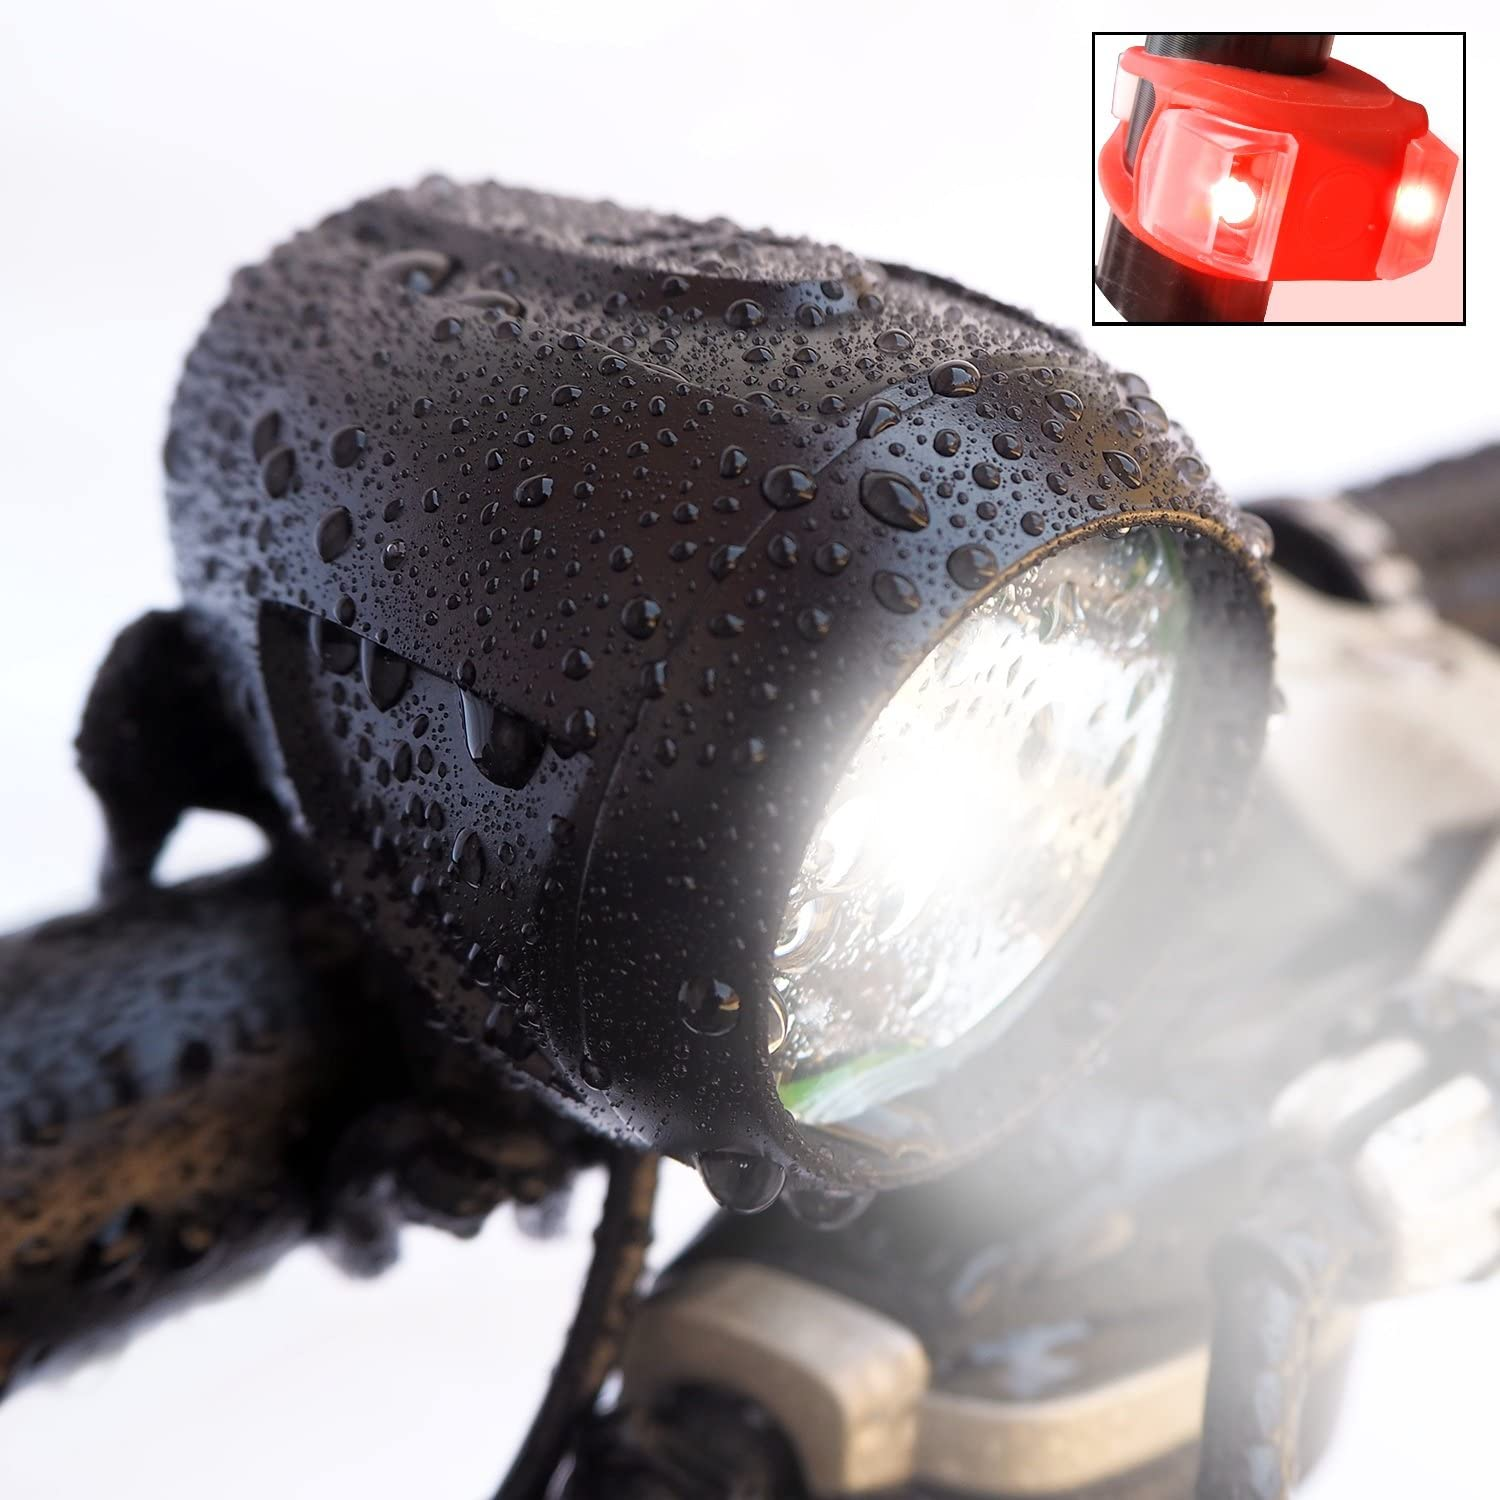 Bright Eyes Newly Upgraded and Fully Waterproof 1200 Lumen Rechargeable Mountain, Road Bike Headlight, 6400mAh Battery Now 5 Hours on Bright Beam . Free Diffuser Lens TAILLIGHT